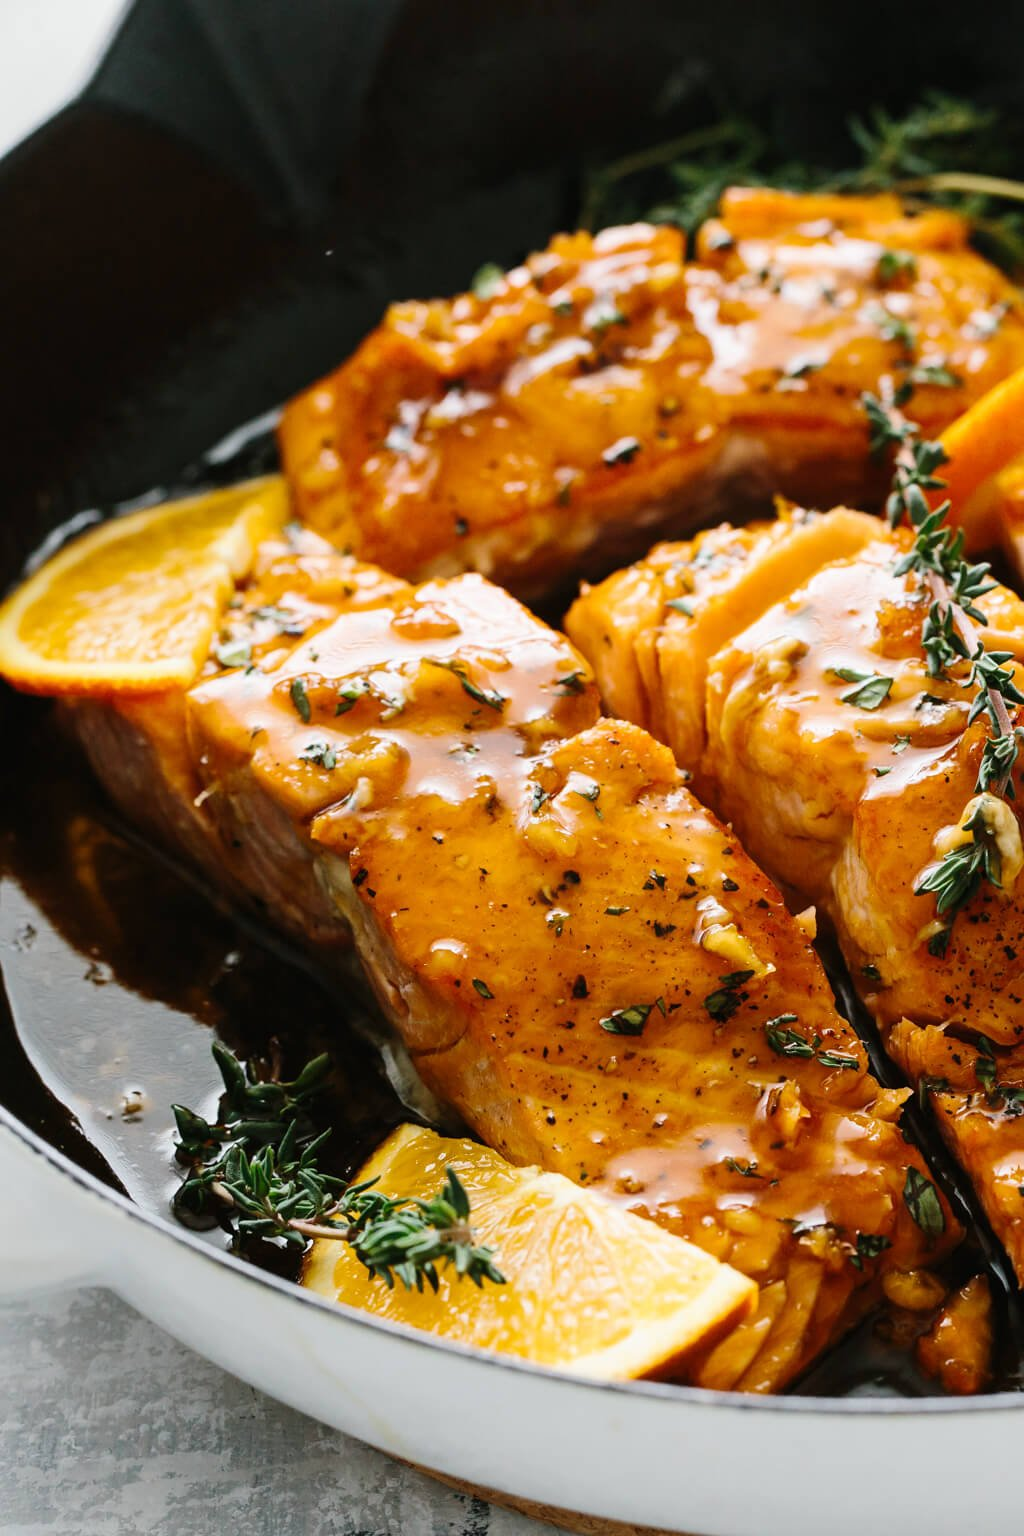 Four salmon filets in a pan with orange slices and thyme on top.